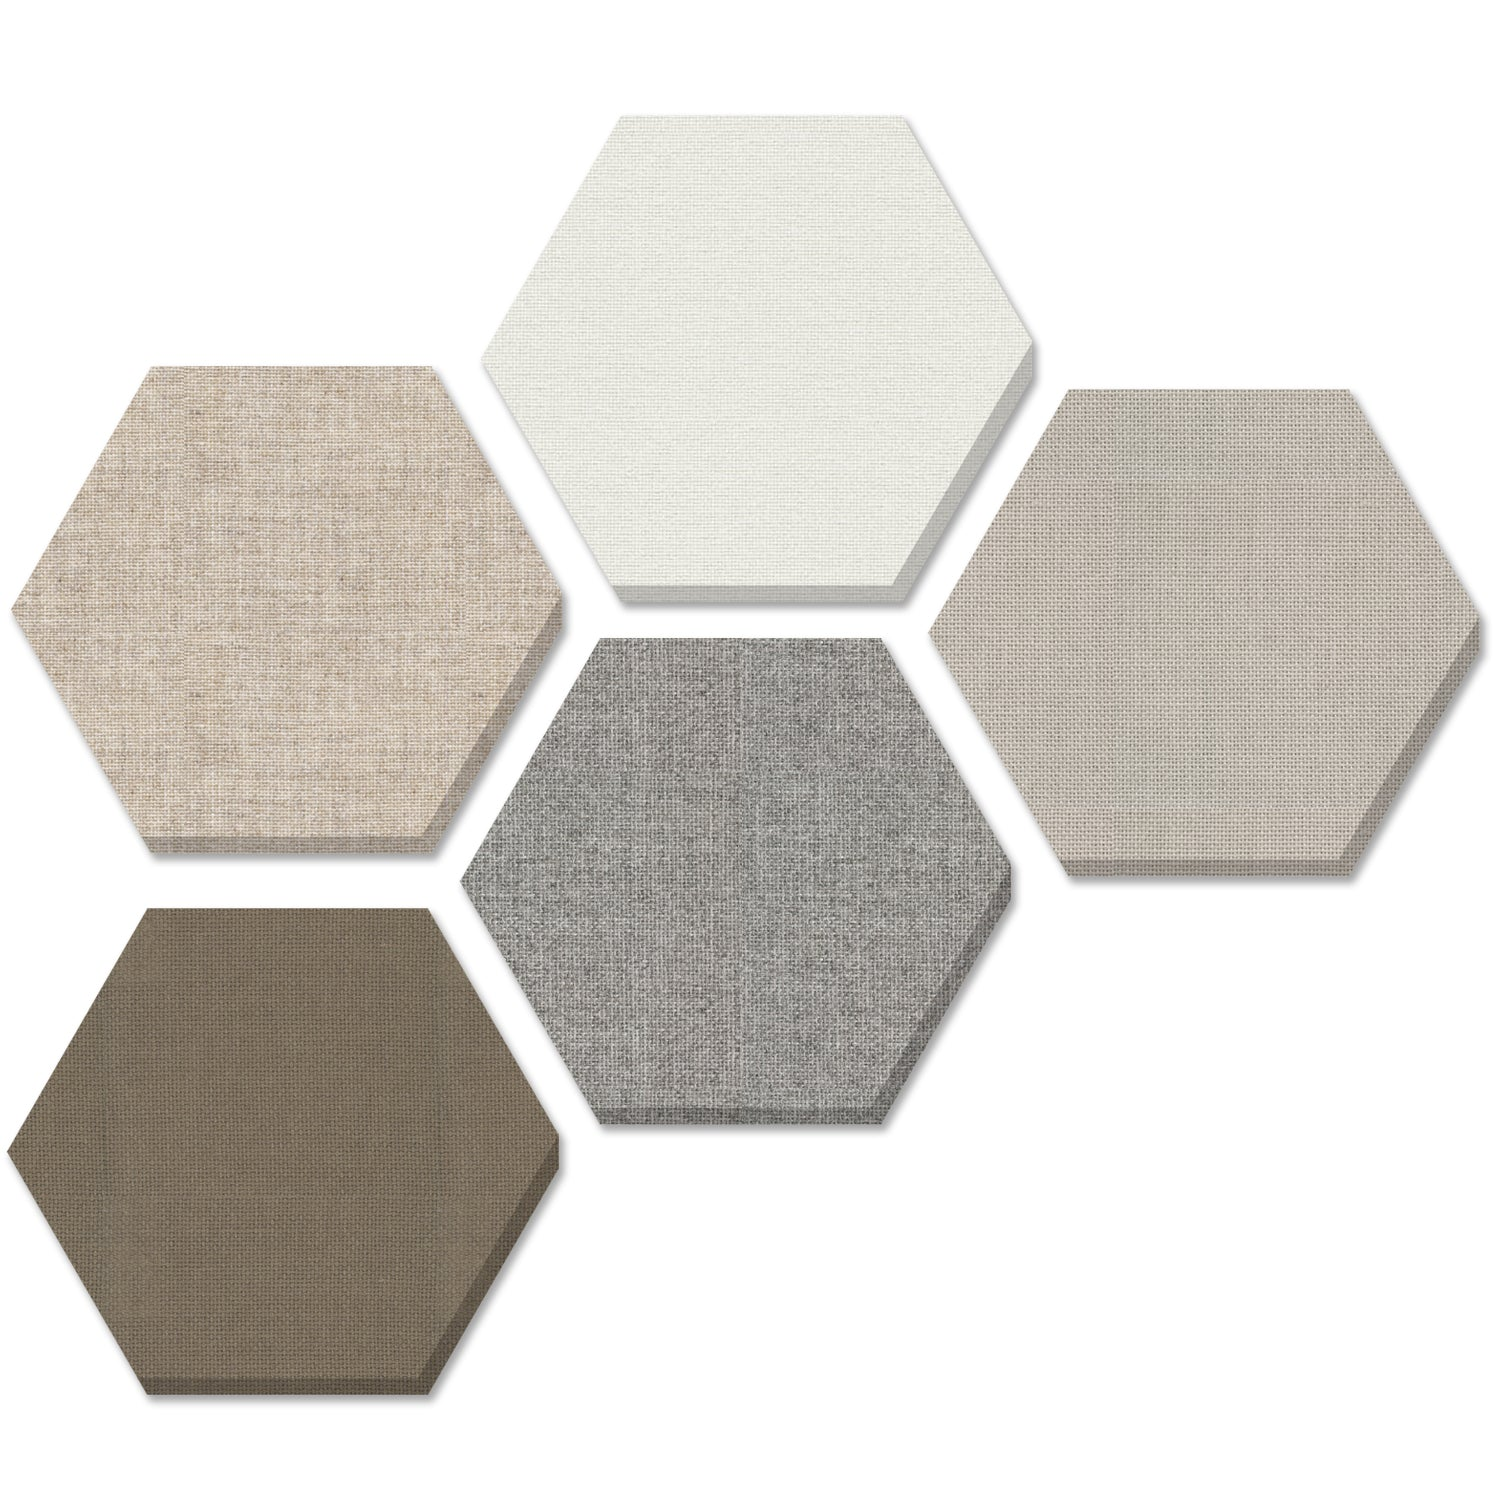 ADW Acoustic Panel Hexagon Kit - 5 pieces 24